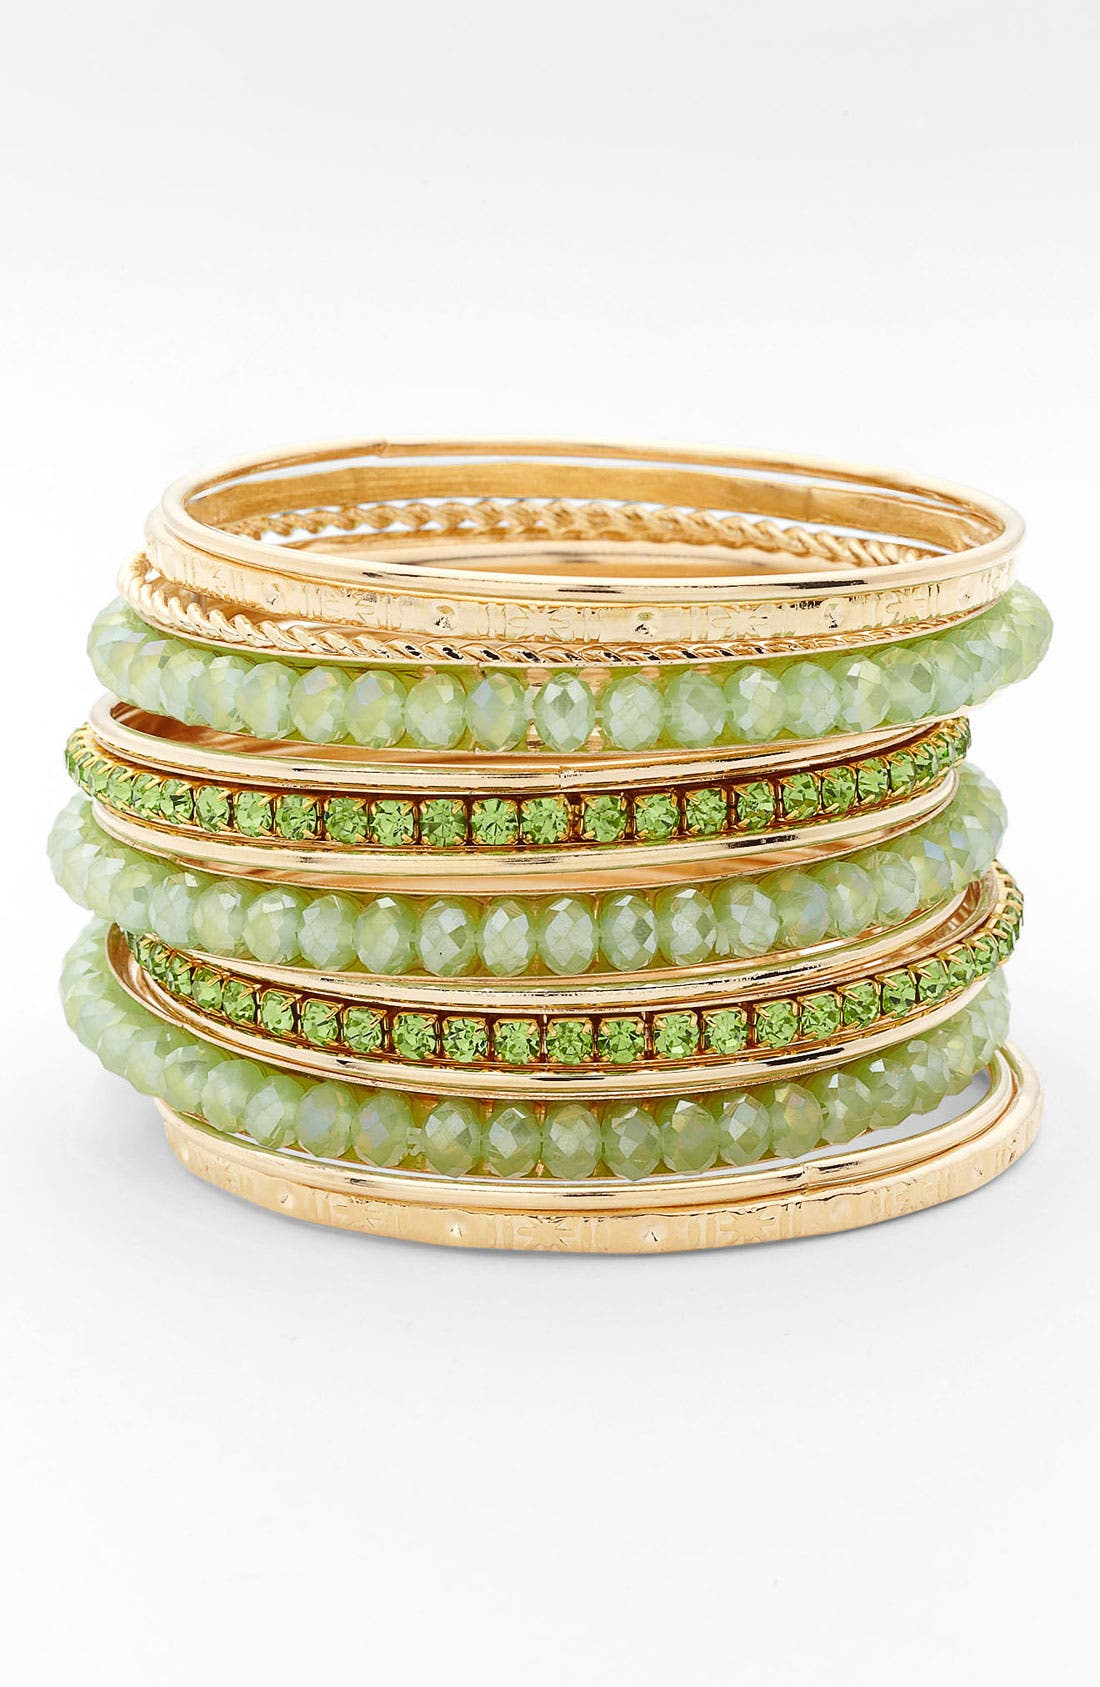 Alternate Image 1 Selected - Cara Mixed Media Bangles (Set of 16)